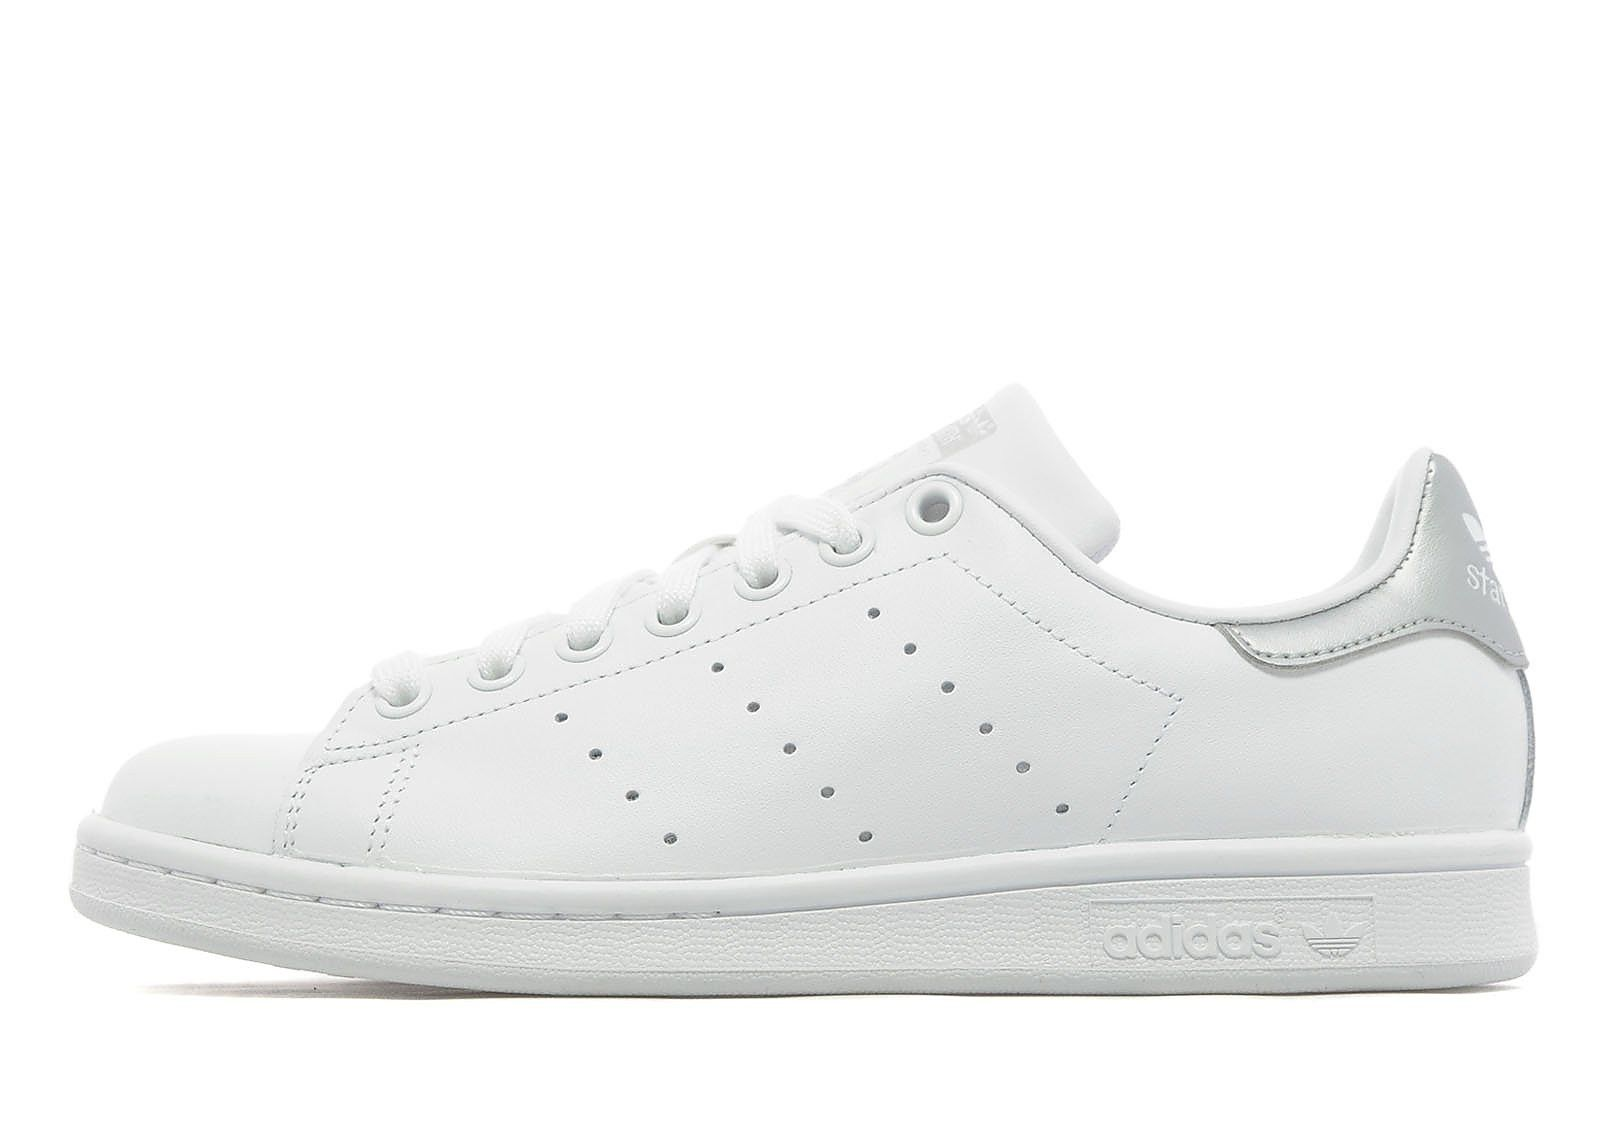 Shoe game · Adidas stan smith white and silver